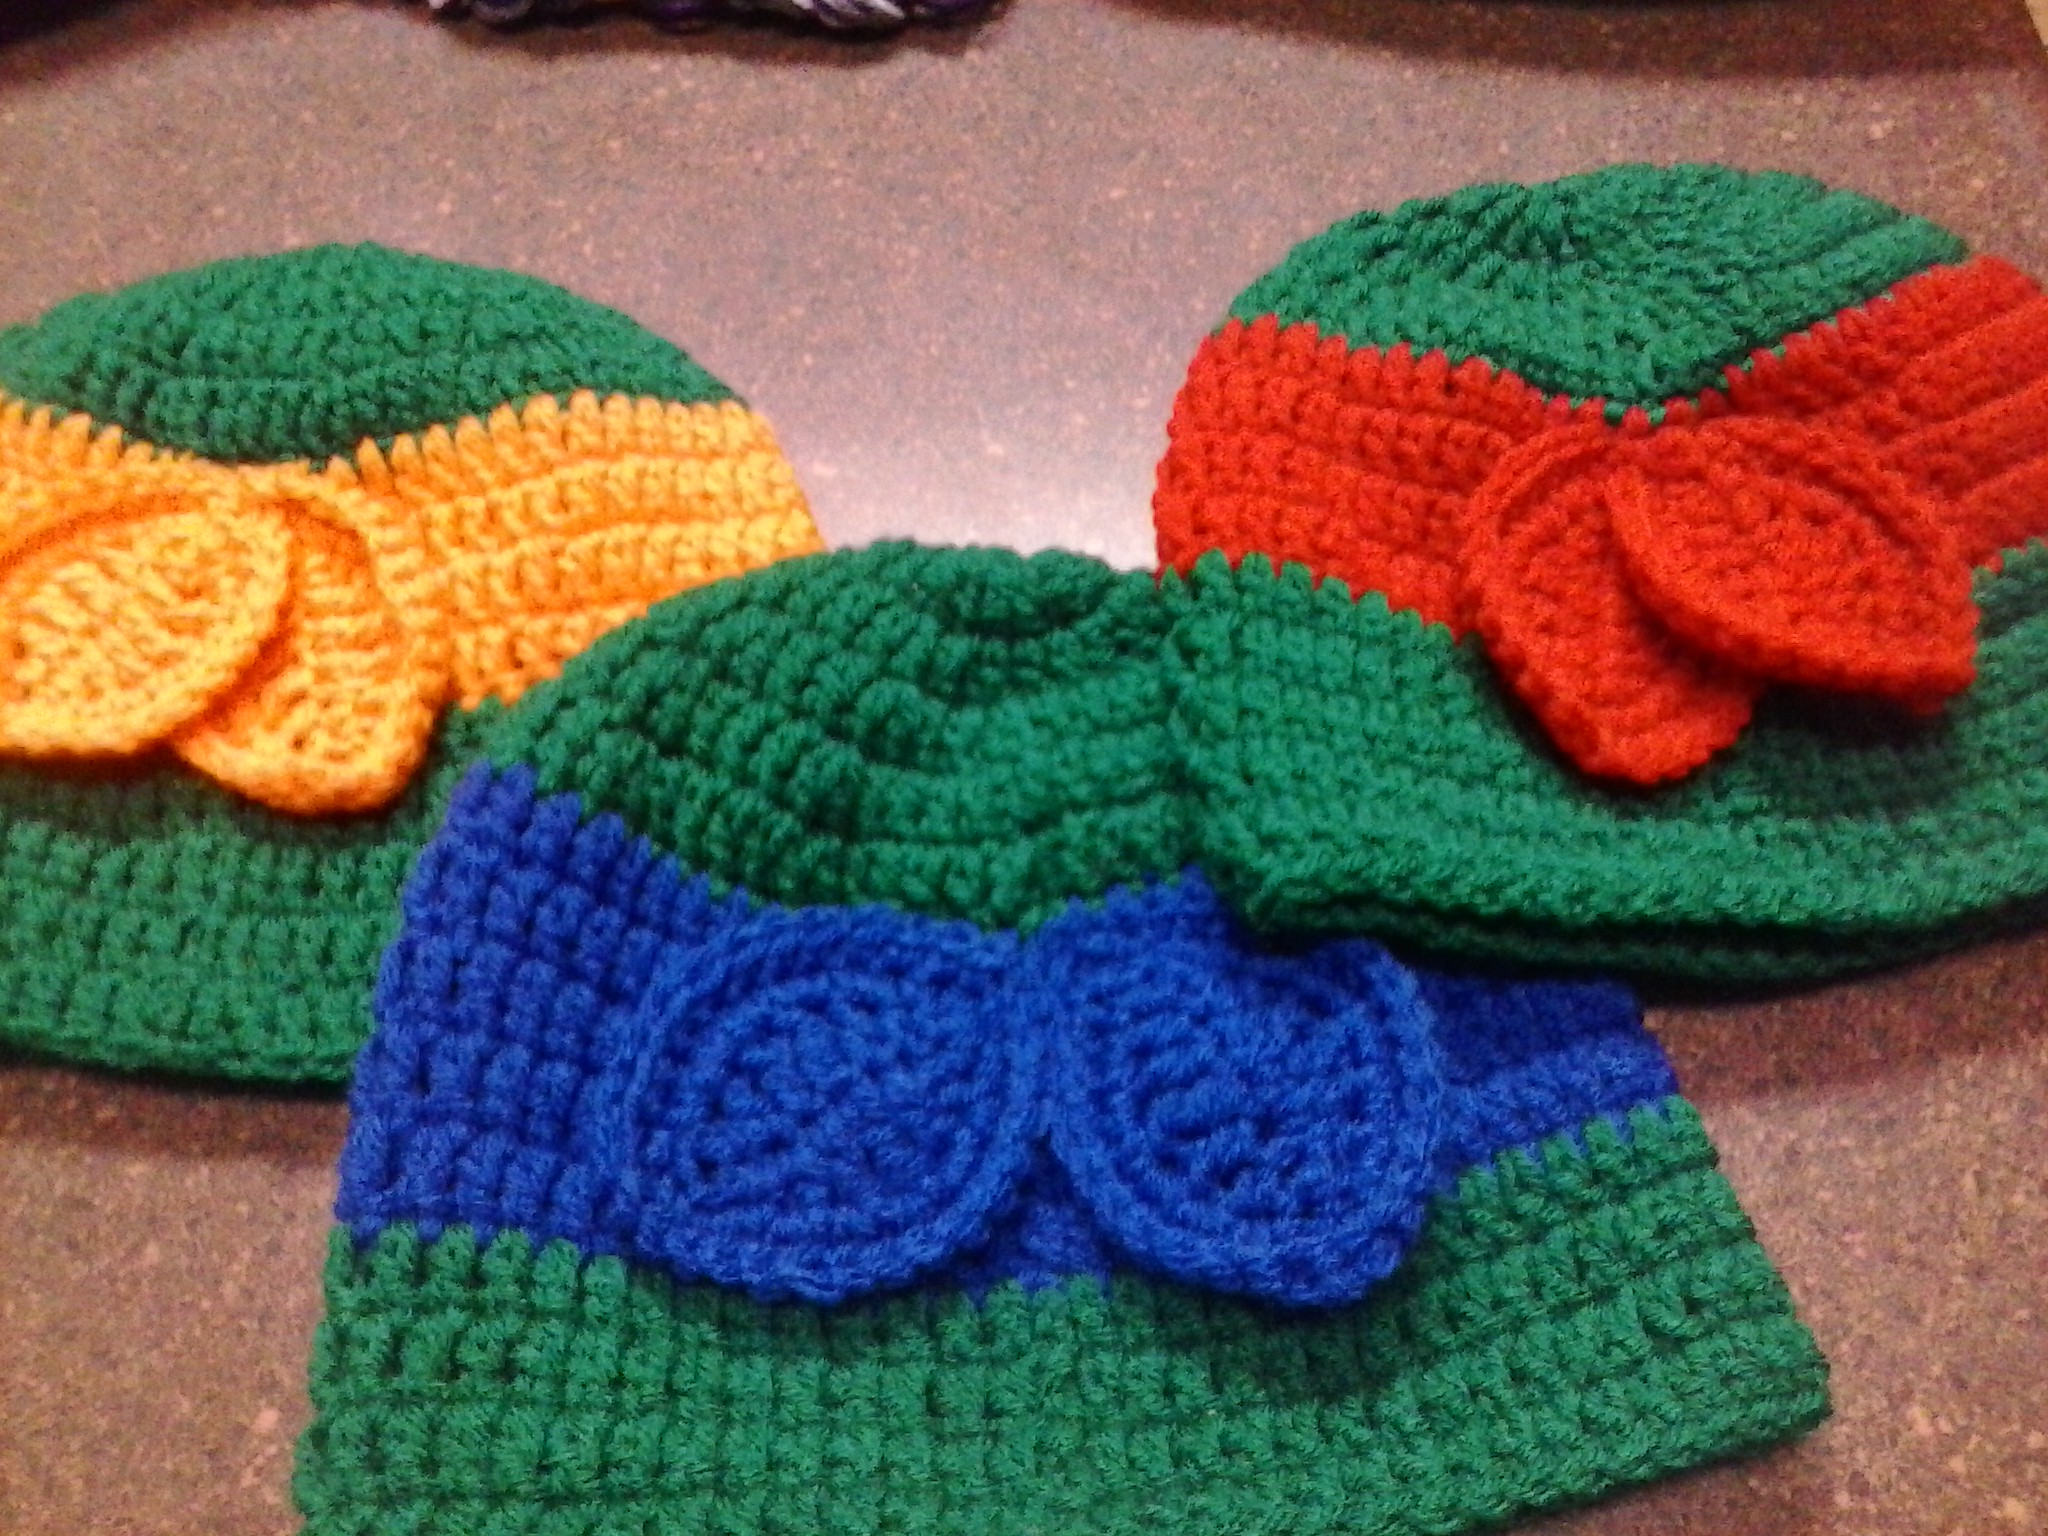 Crochet Pattern For Ninja Turtle Blanket : Ninja Turtle Inspired Crochet Beanie ? Lilpumpkinscrochet ...